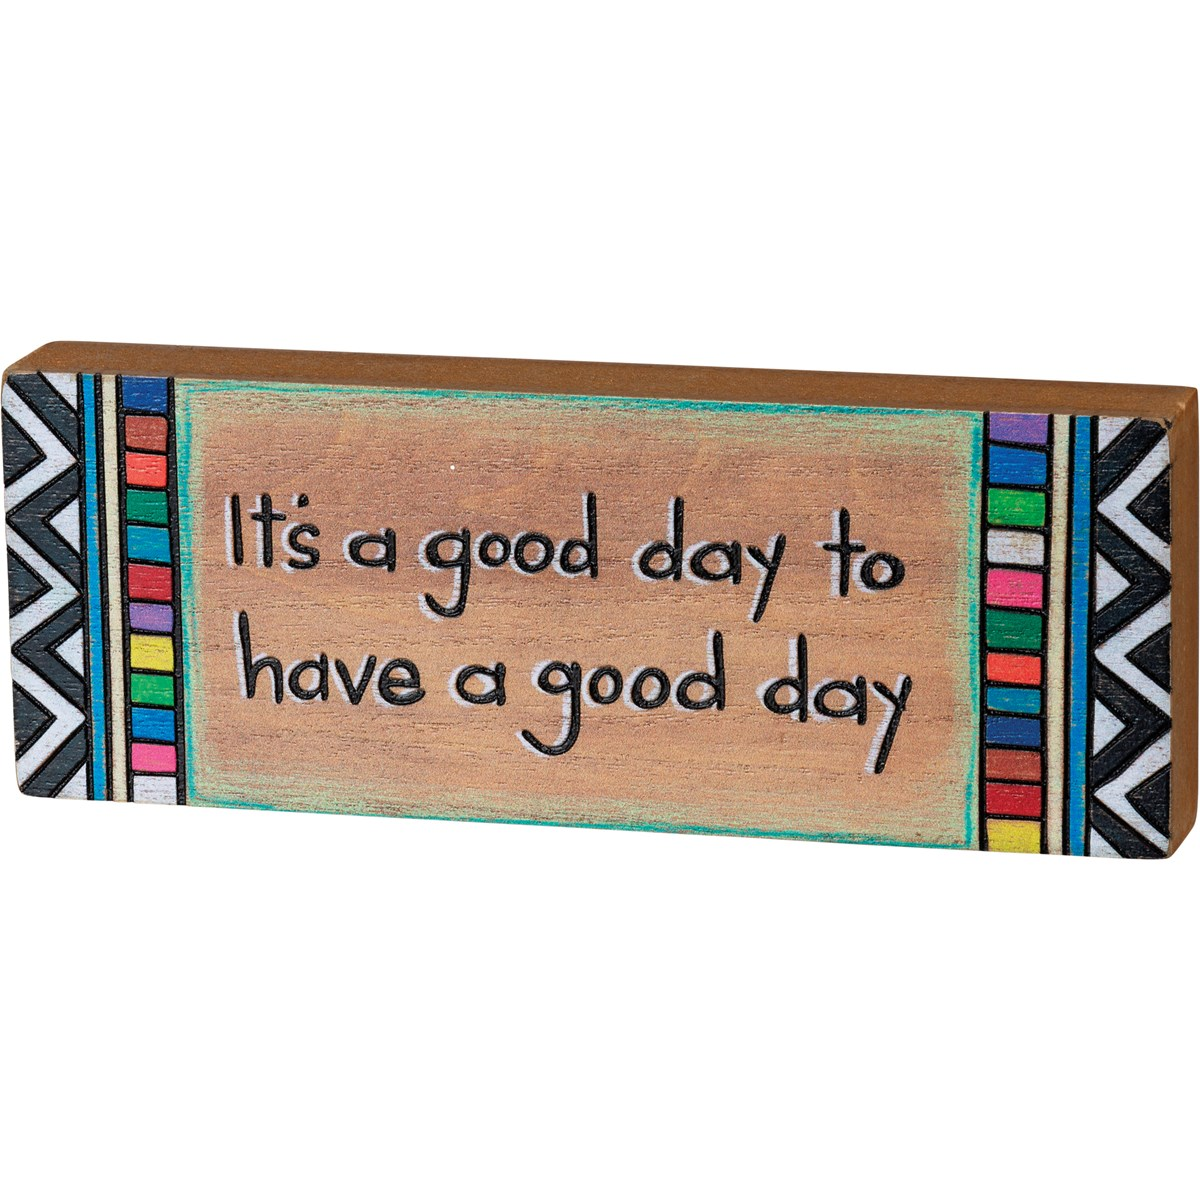 "Block Sign - It's A Good Day To Have A Good Day - 8"" x 3"" x 1"" - Wood"